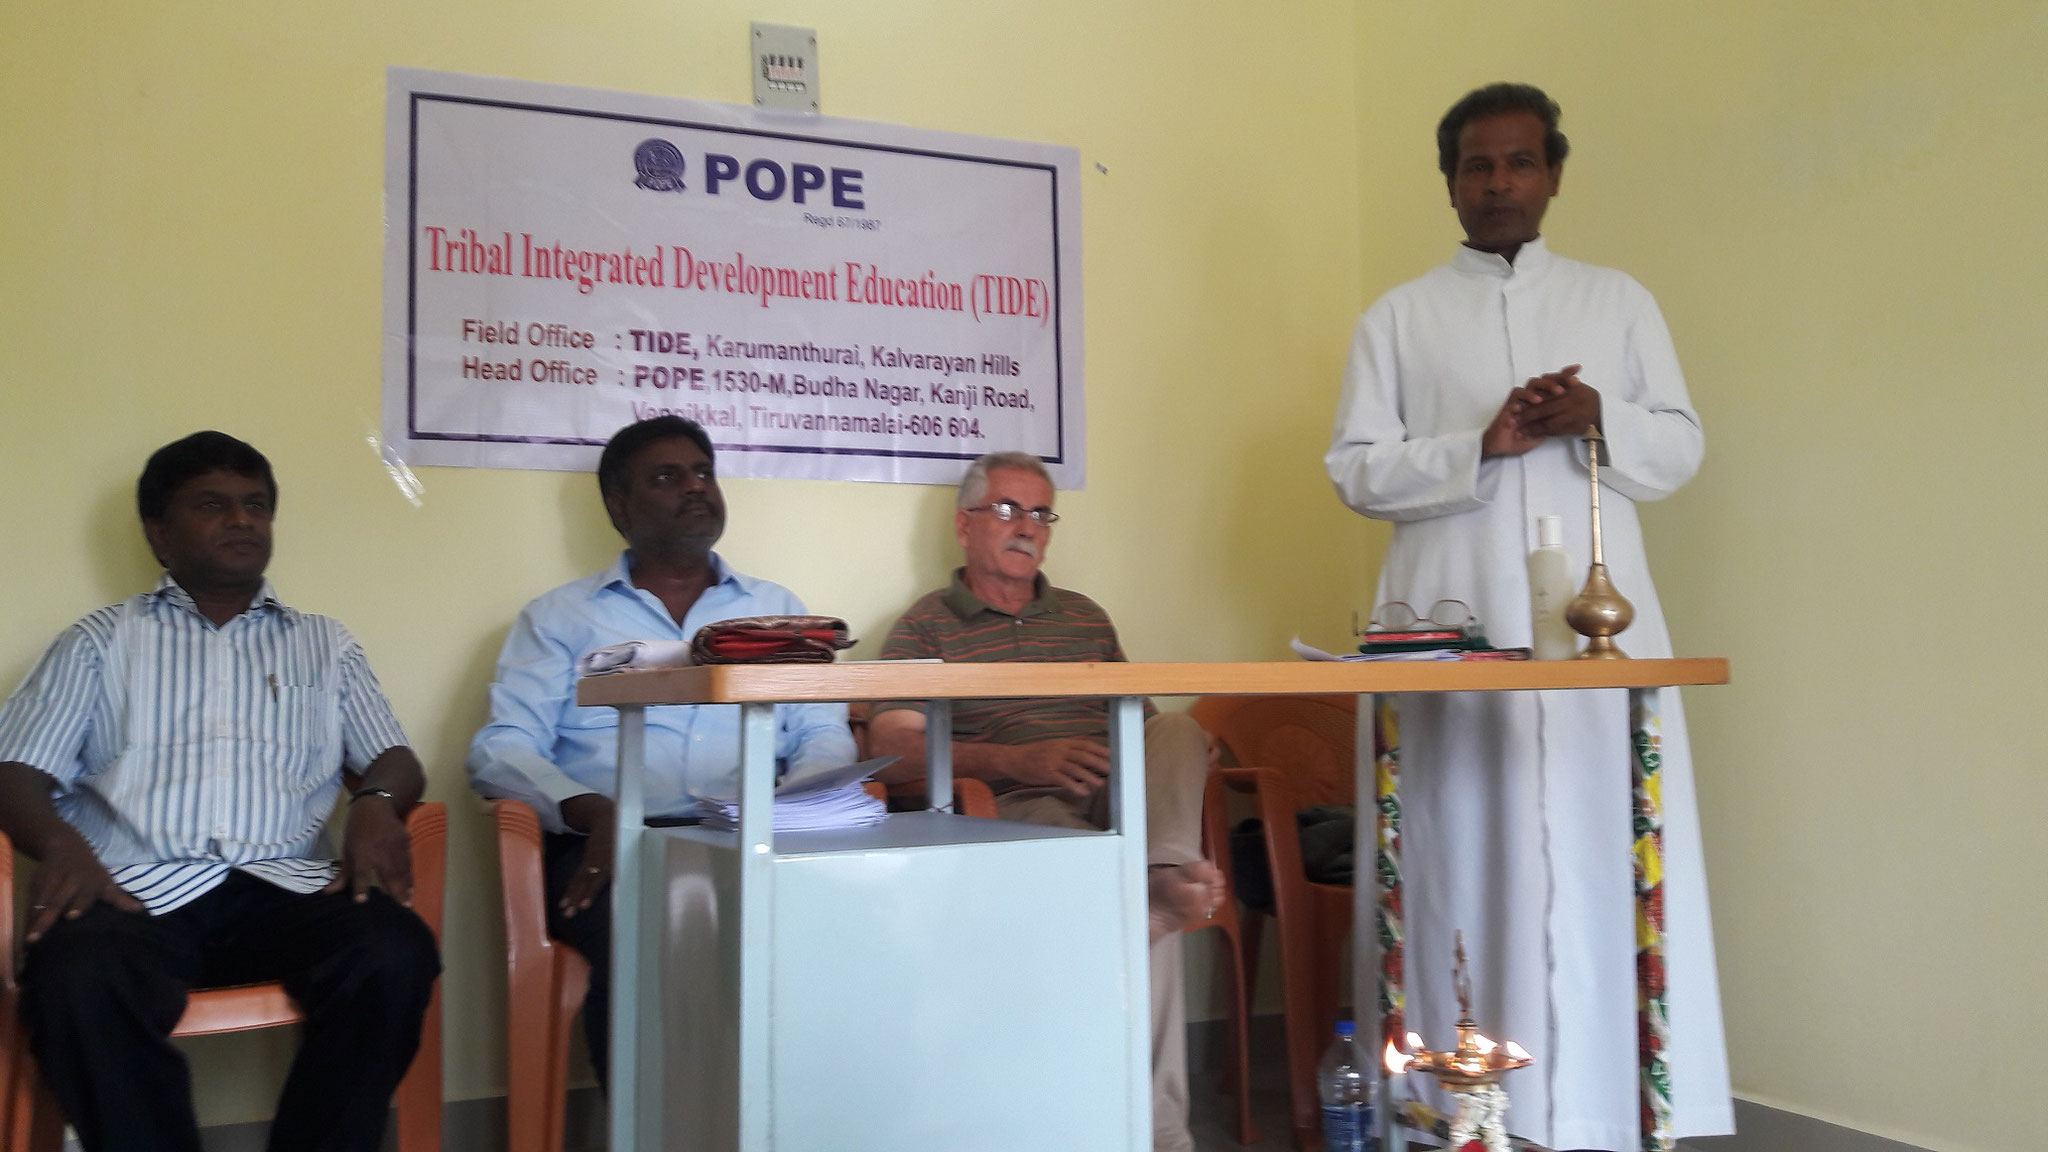 Fr. Durai Raj, parish priest of Karumanthurai, Kalvarayan Hills.